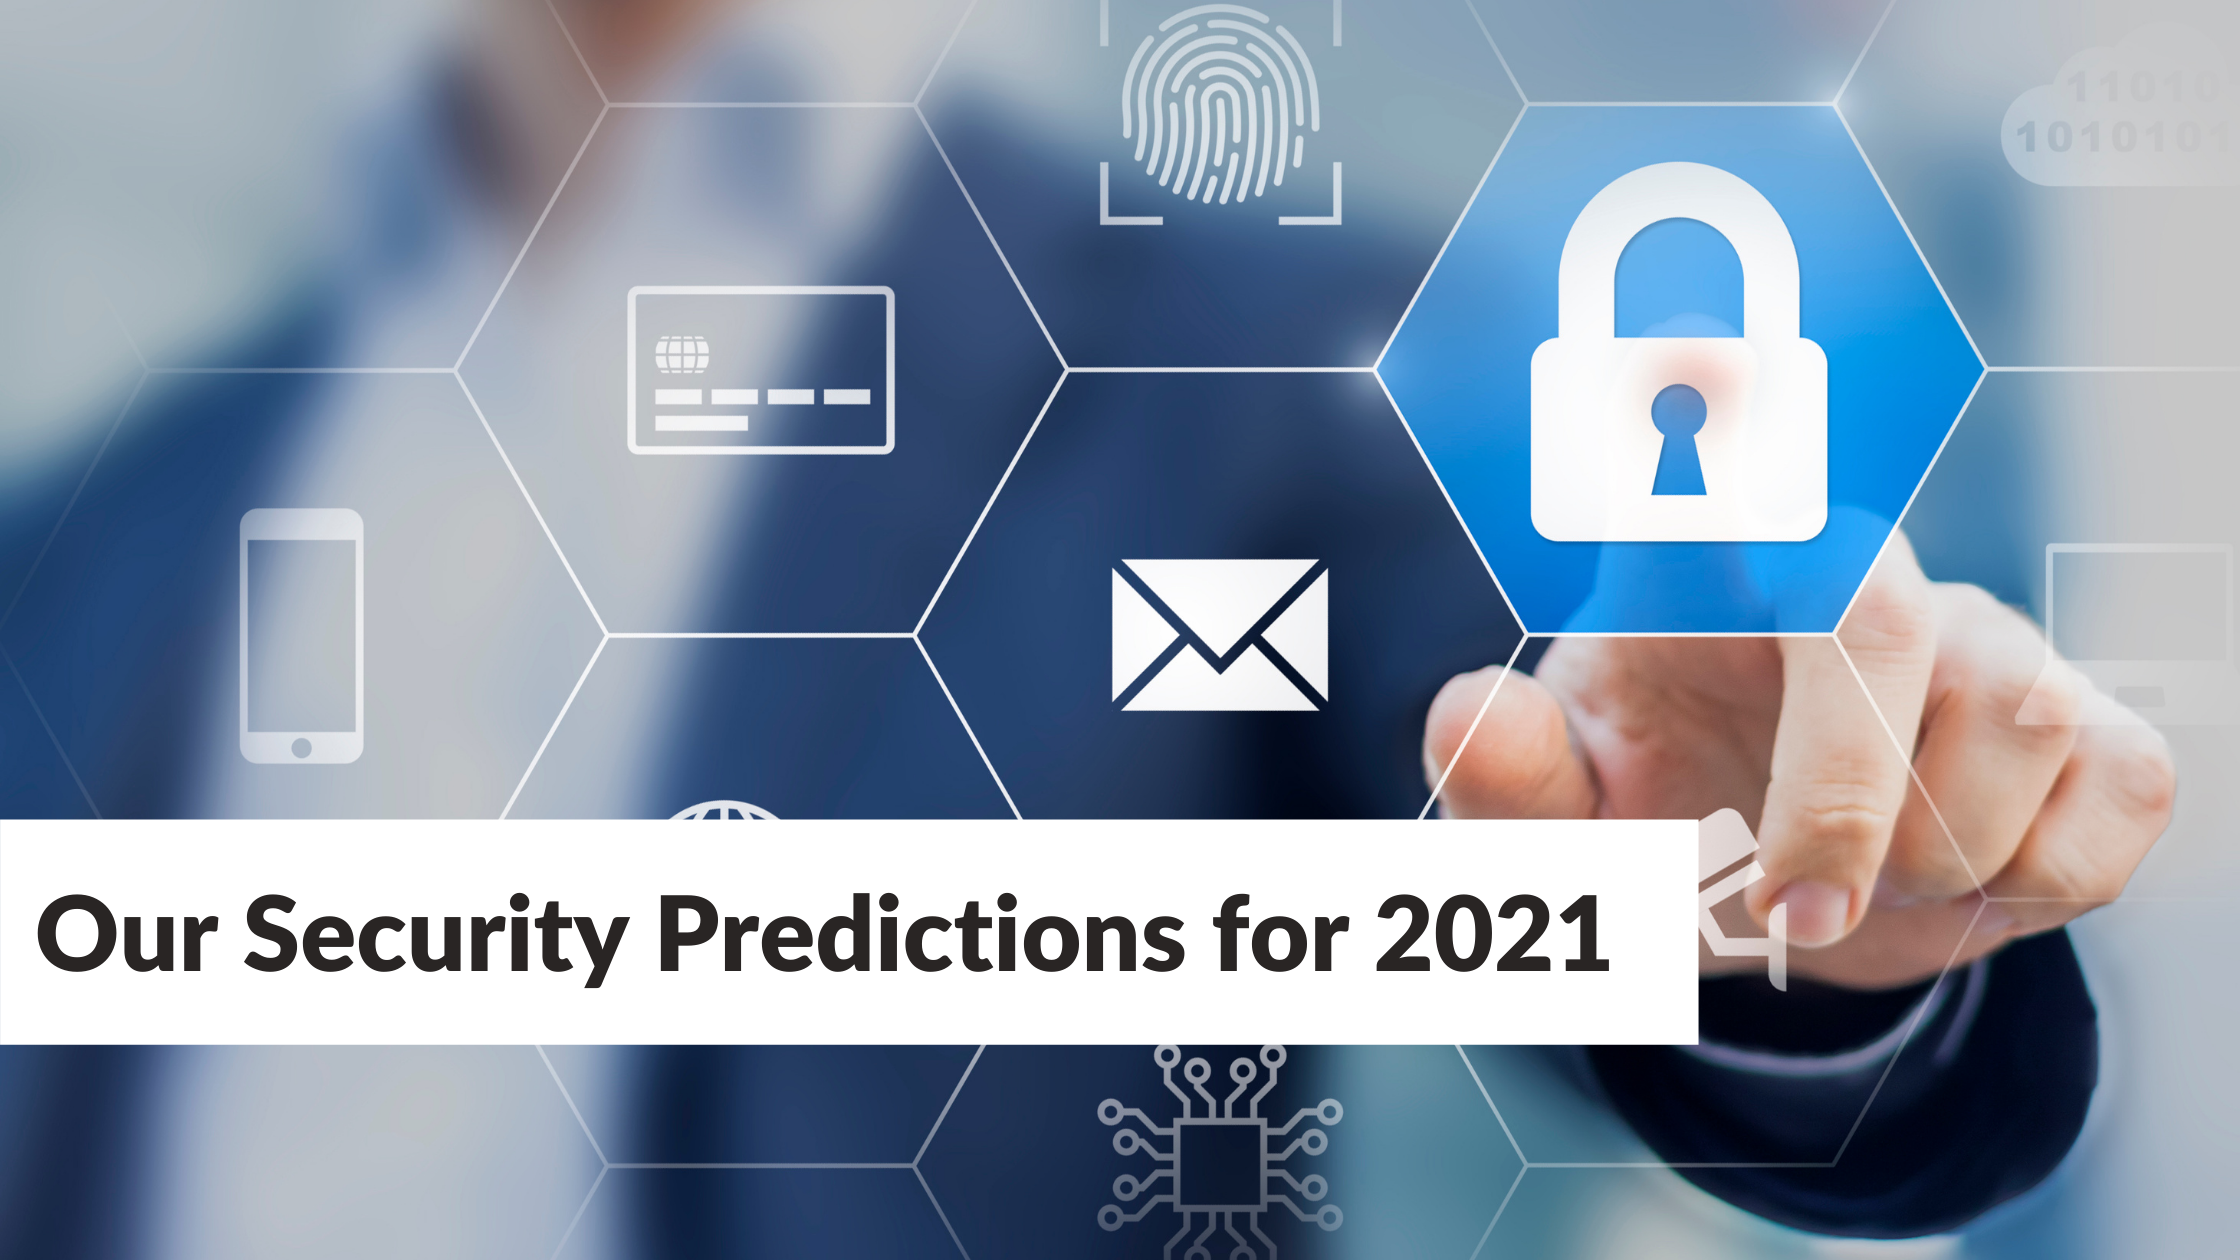 Our Security Predictions for 2021